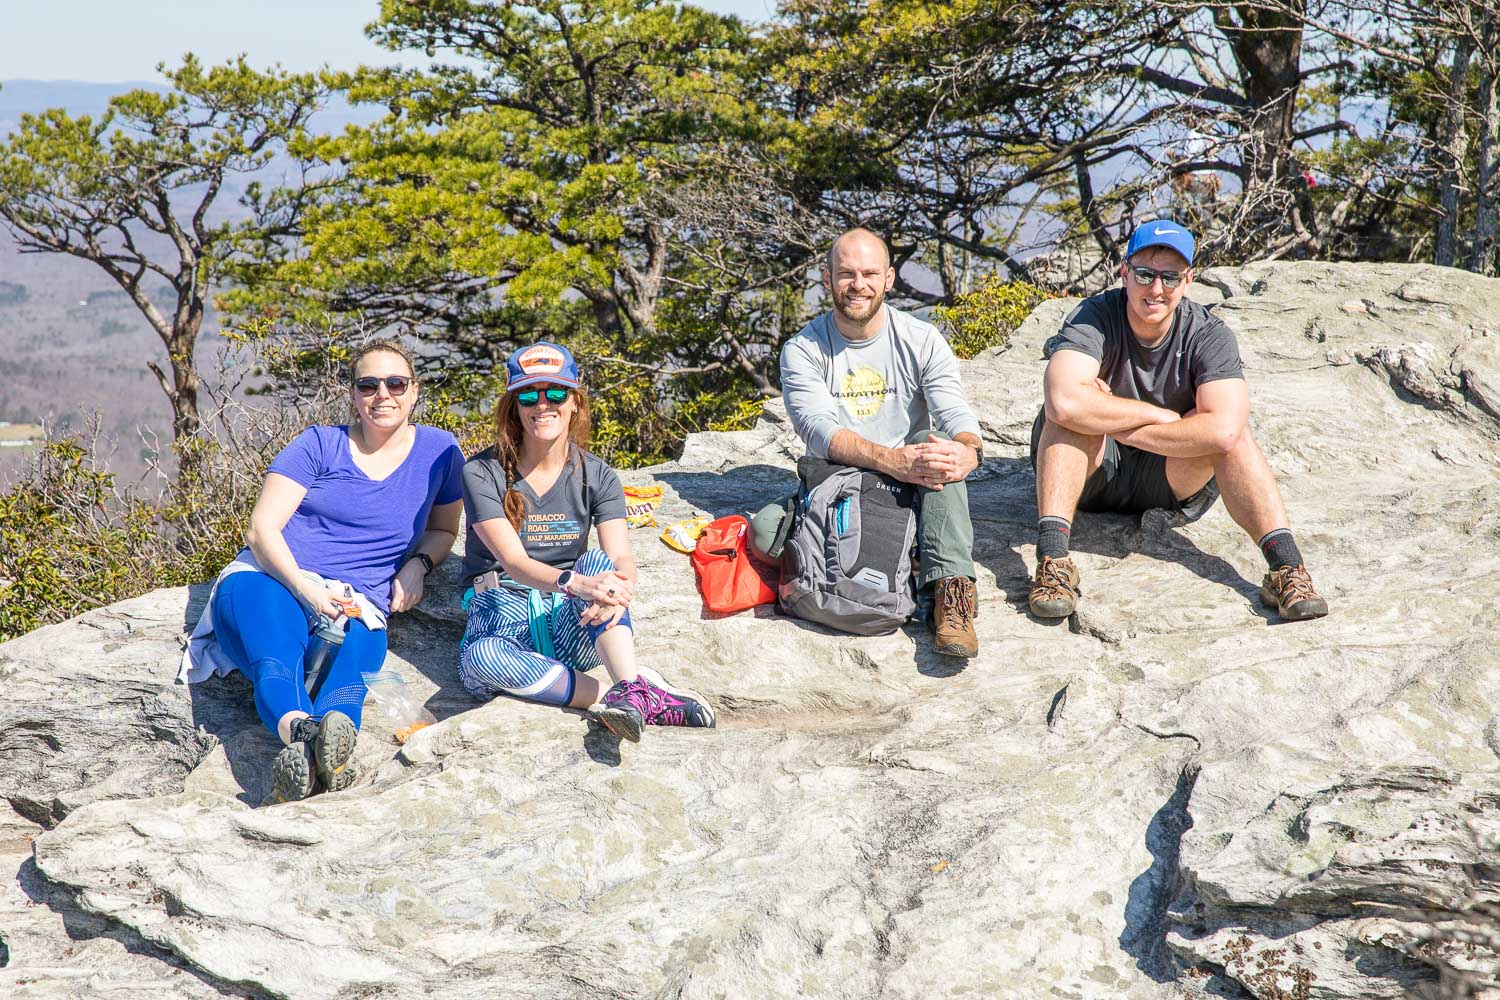 Some of the hiking group at the summit of Hanging Rock (10am hike)